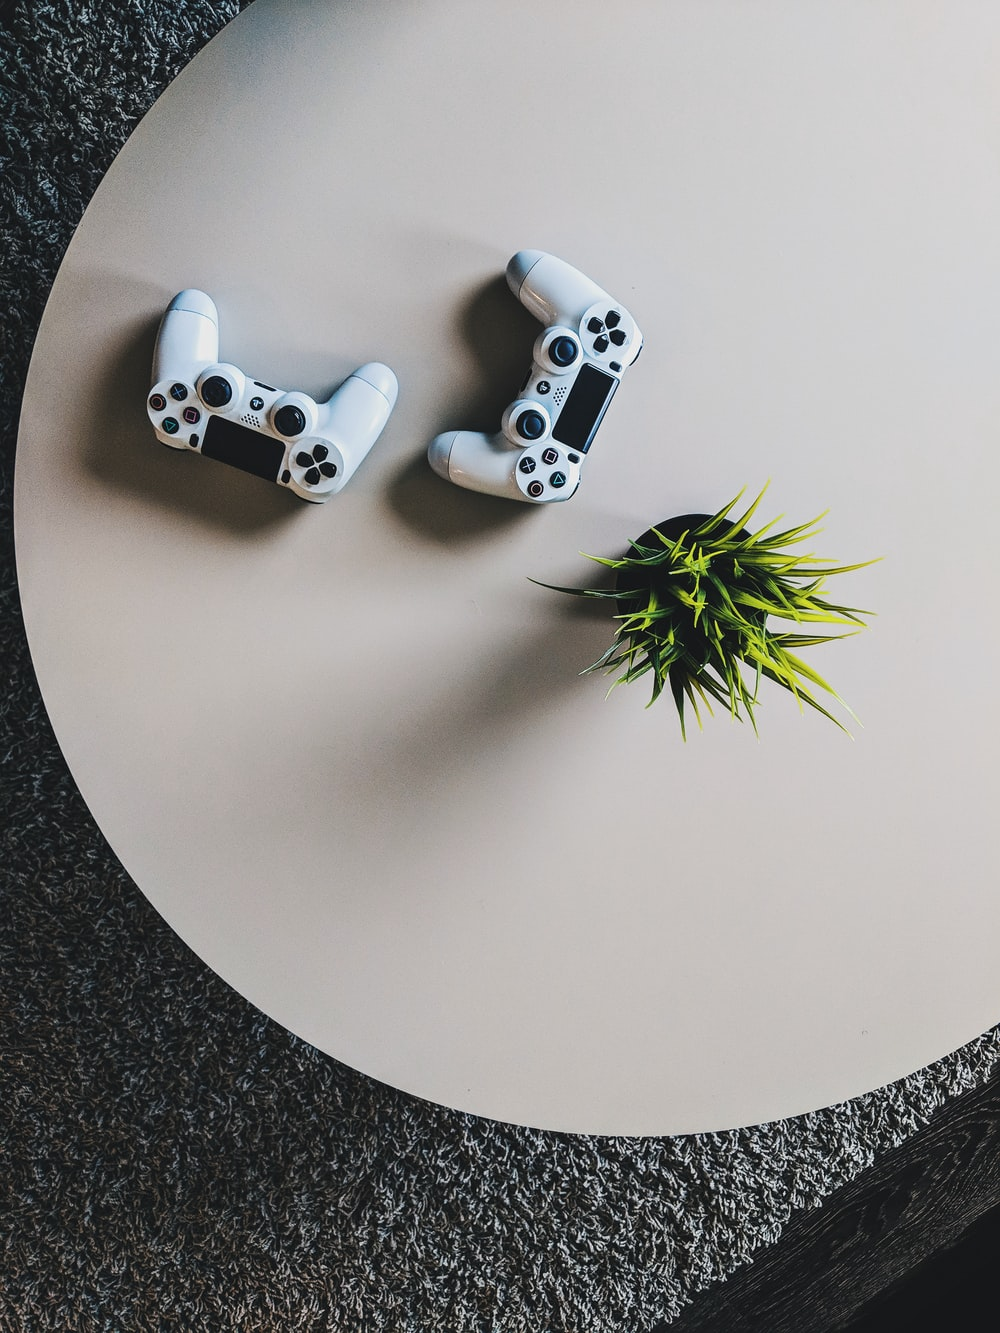 two Sony PS4 controllers on table